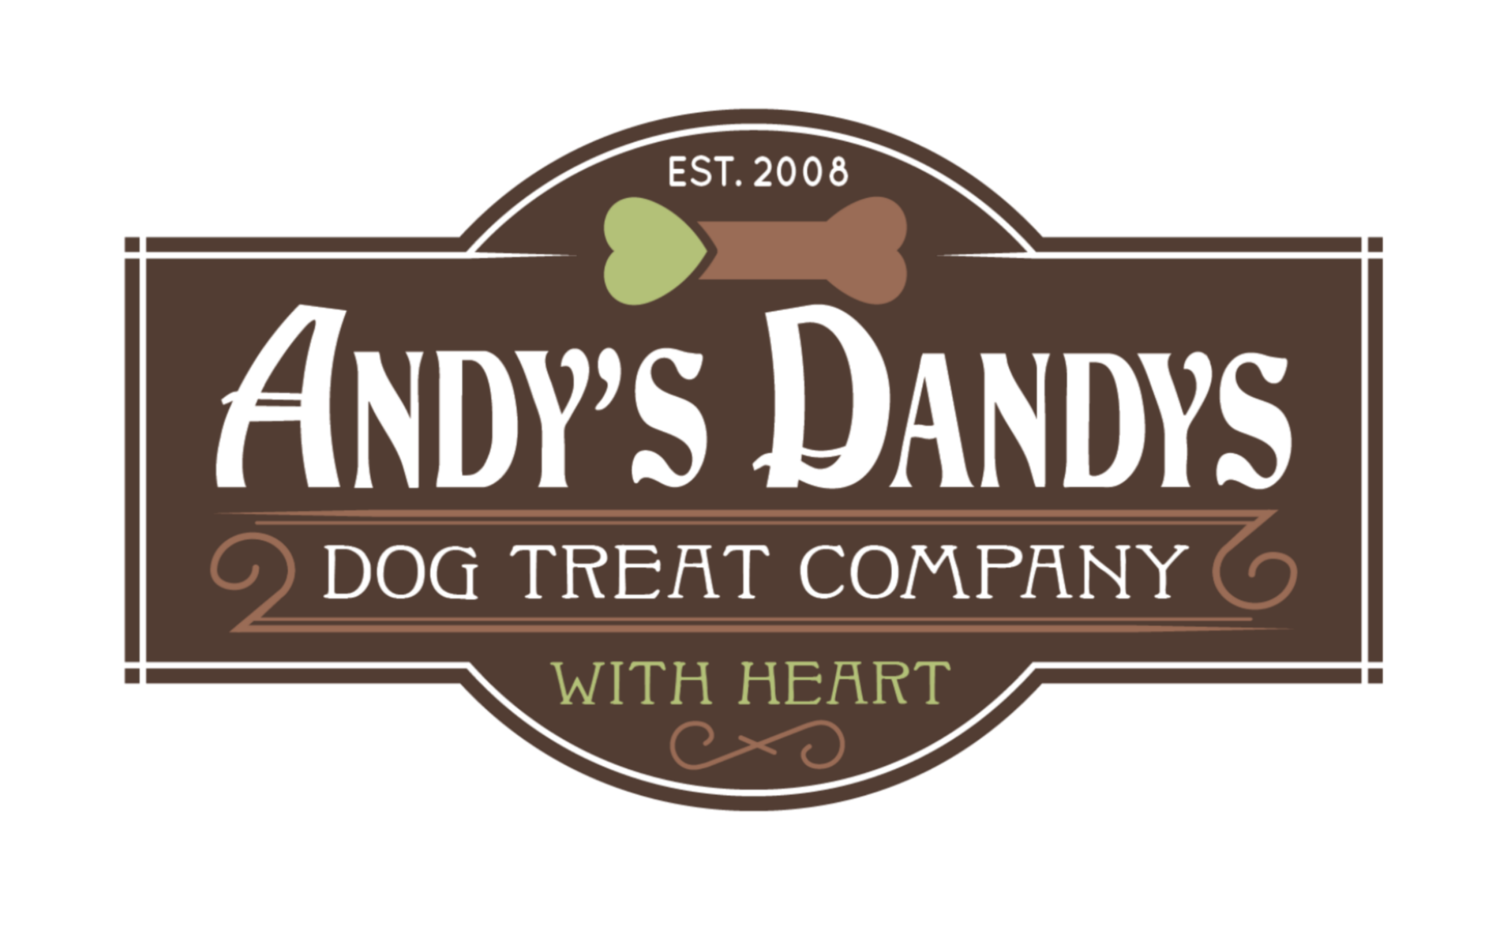 Andy's Dandys